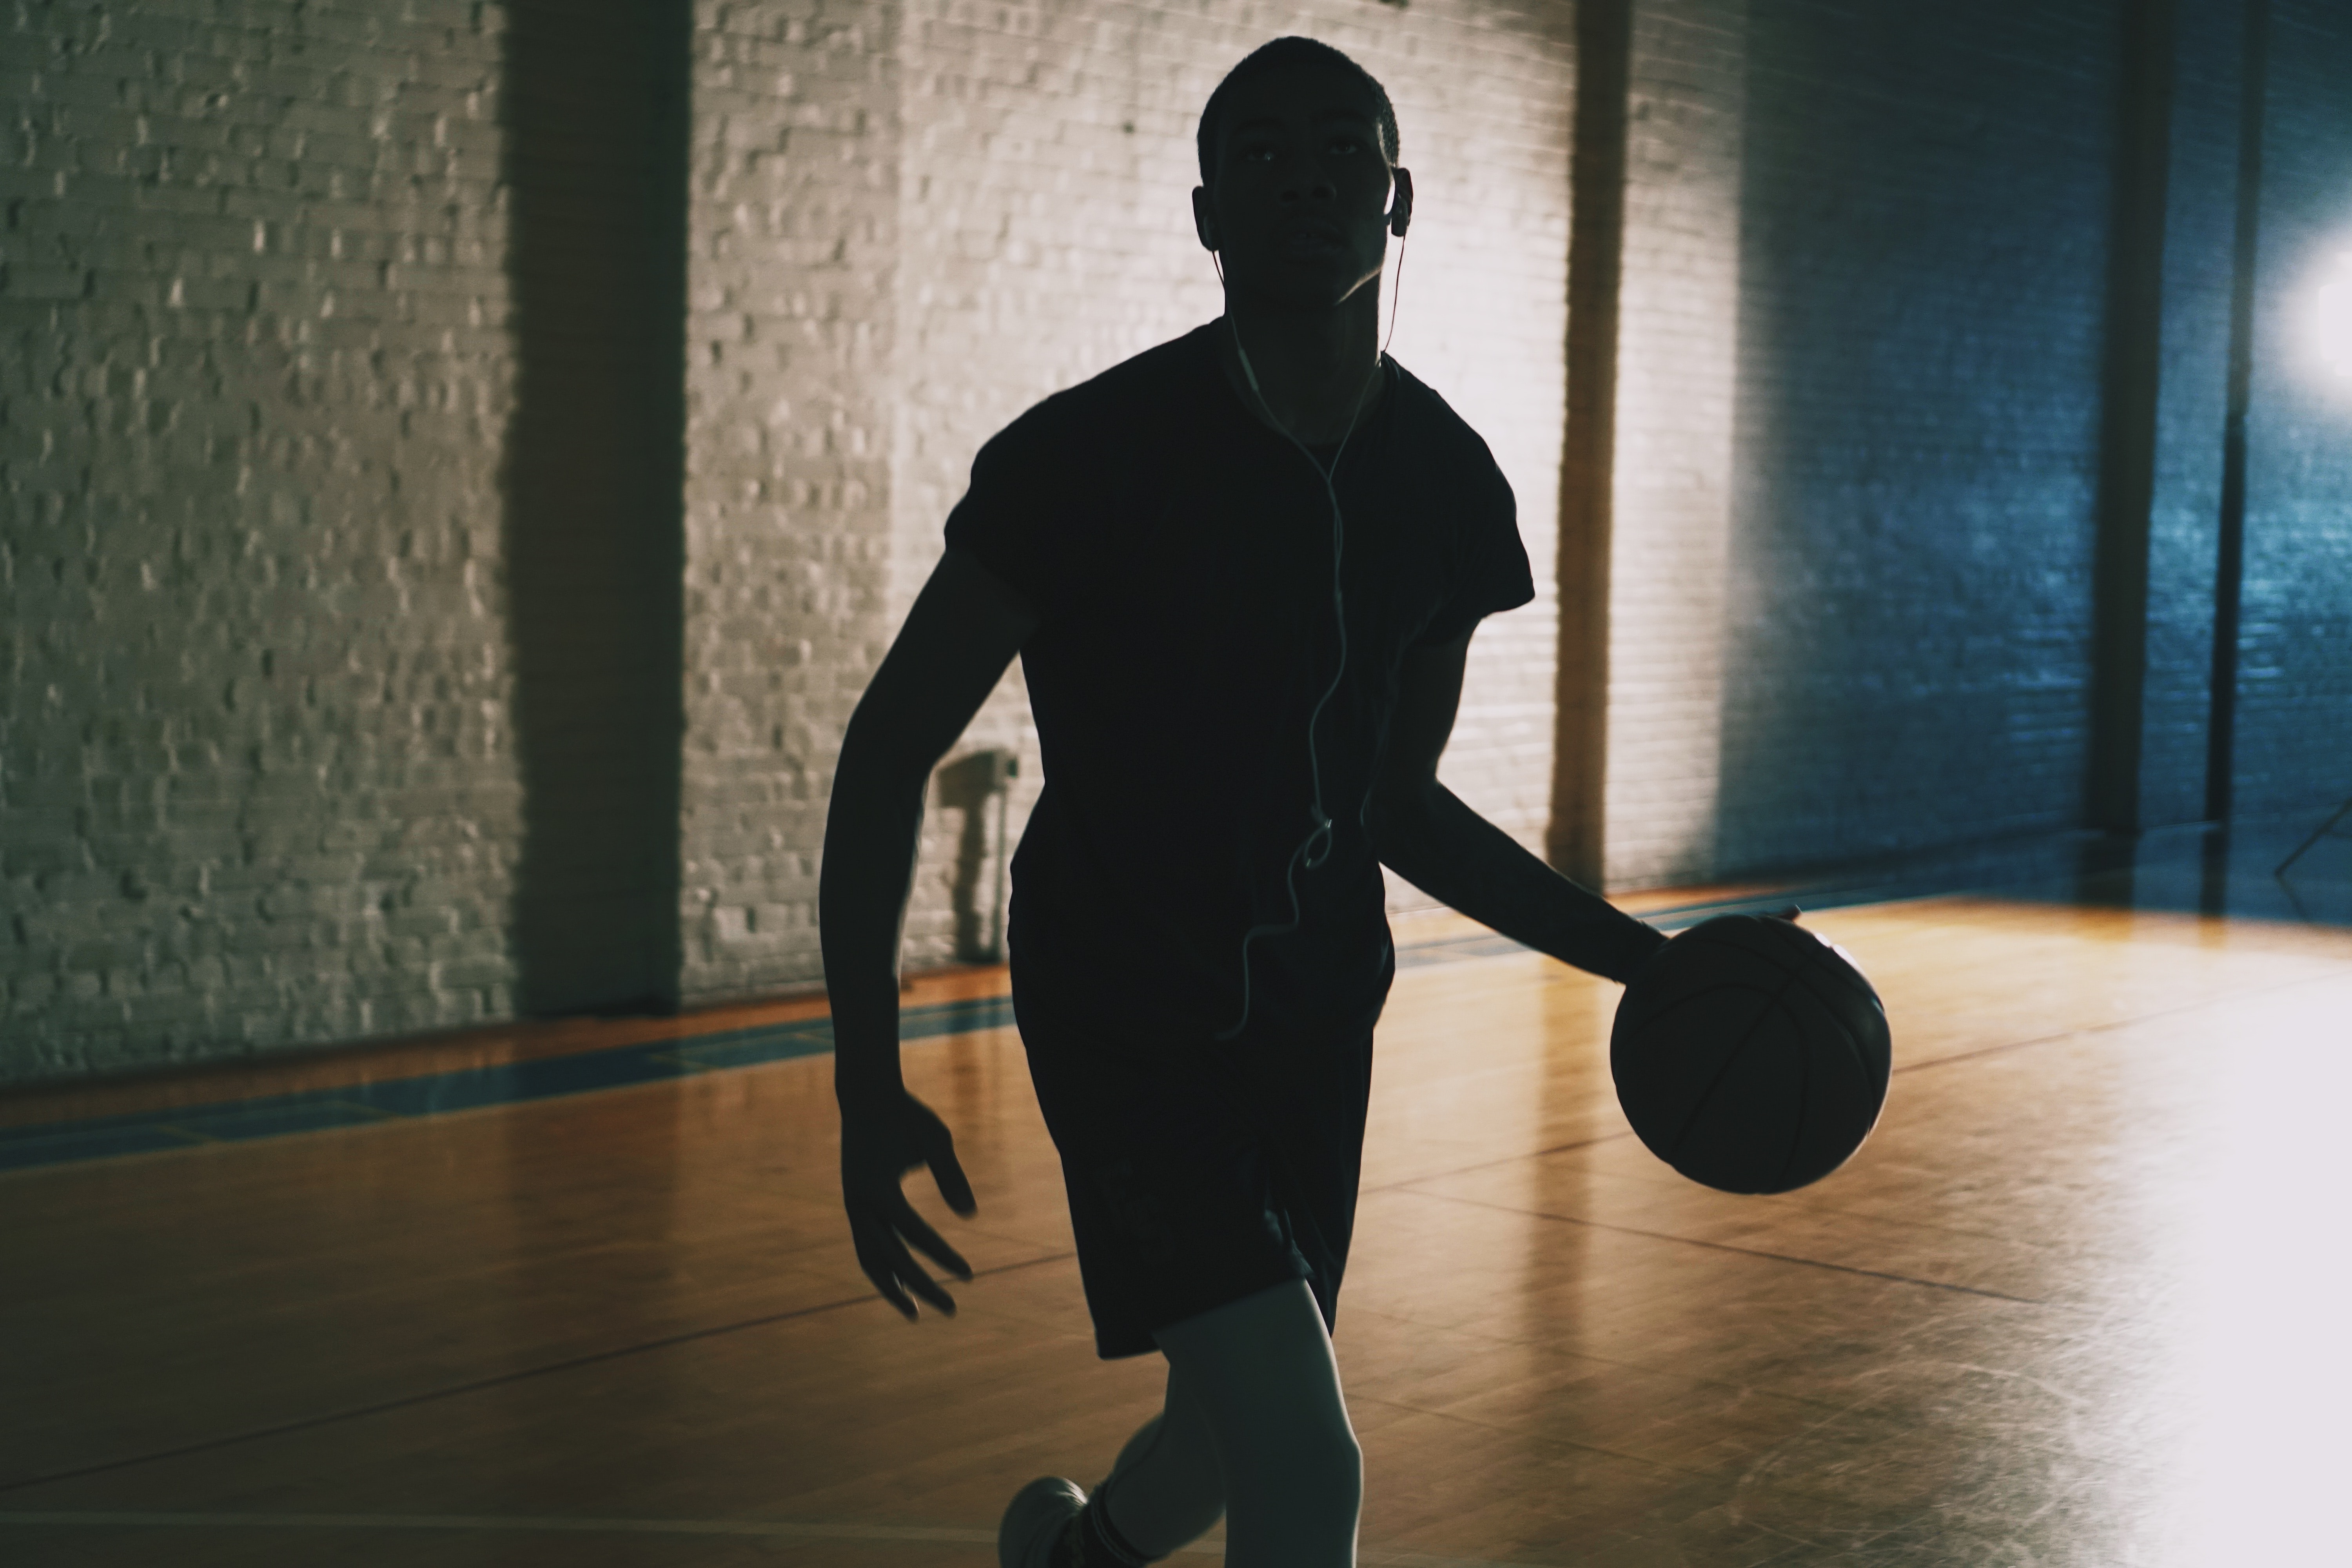 man dribbling ball in closed basketball court